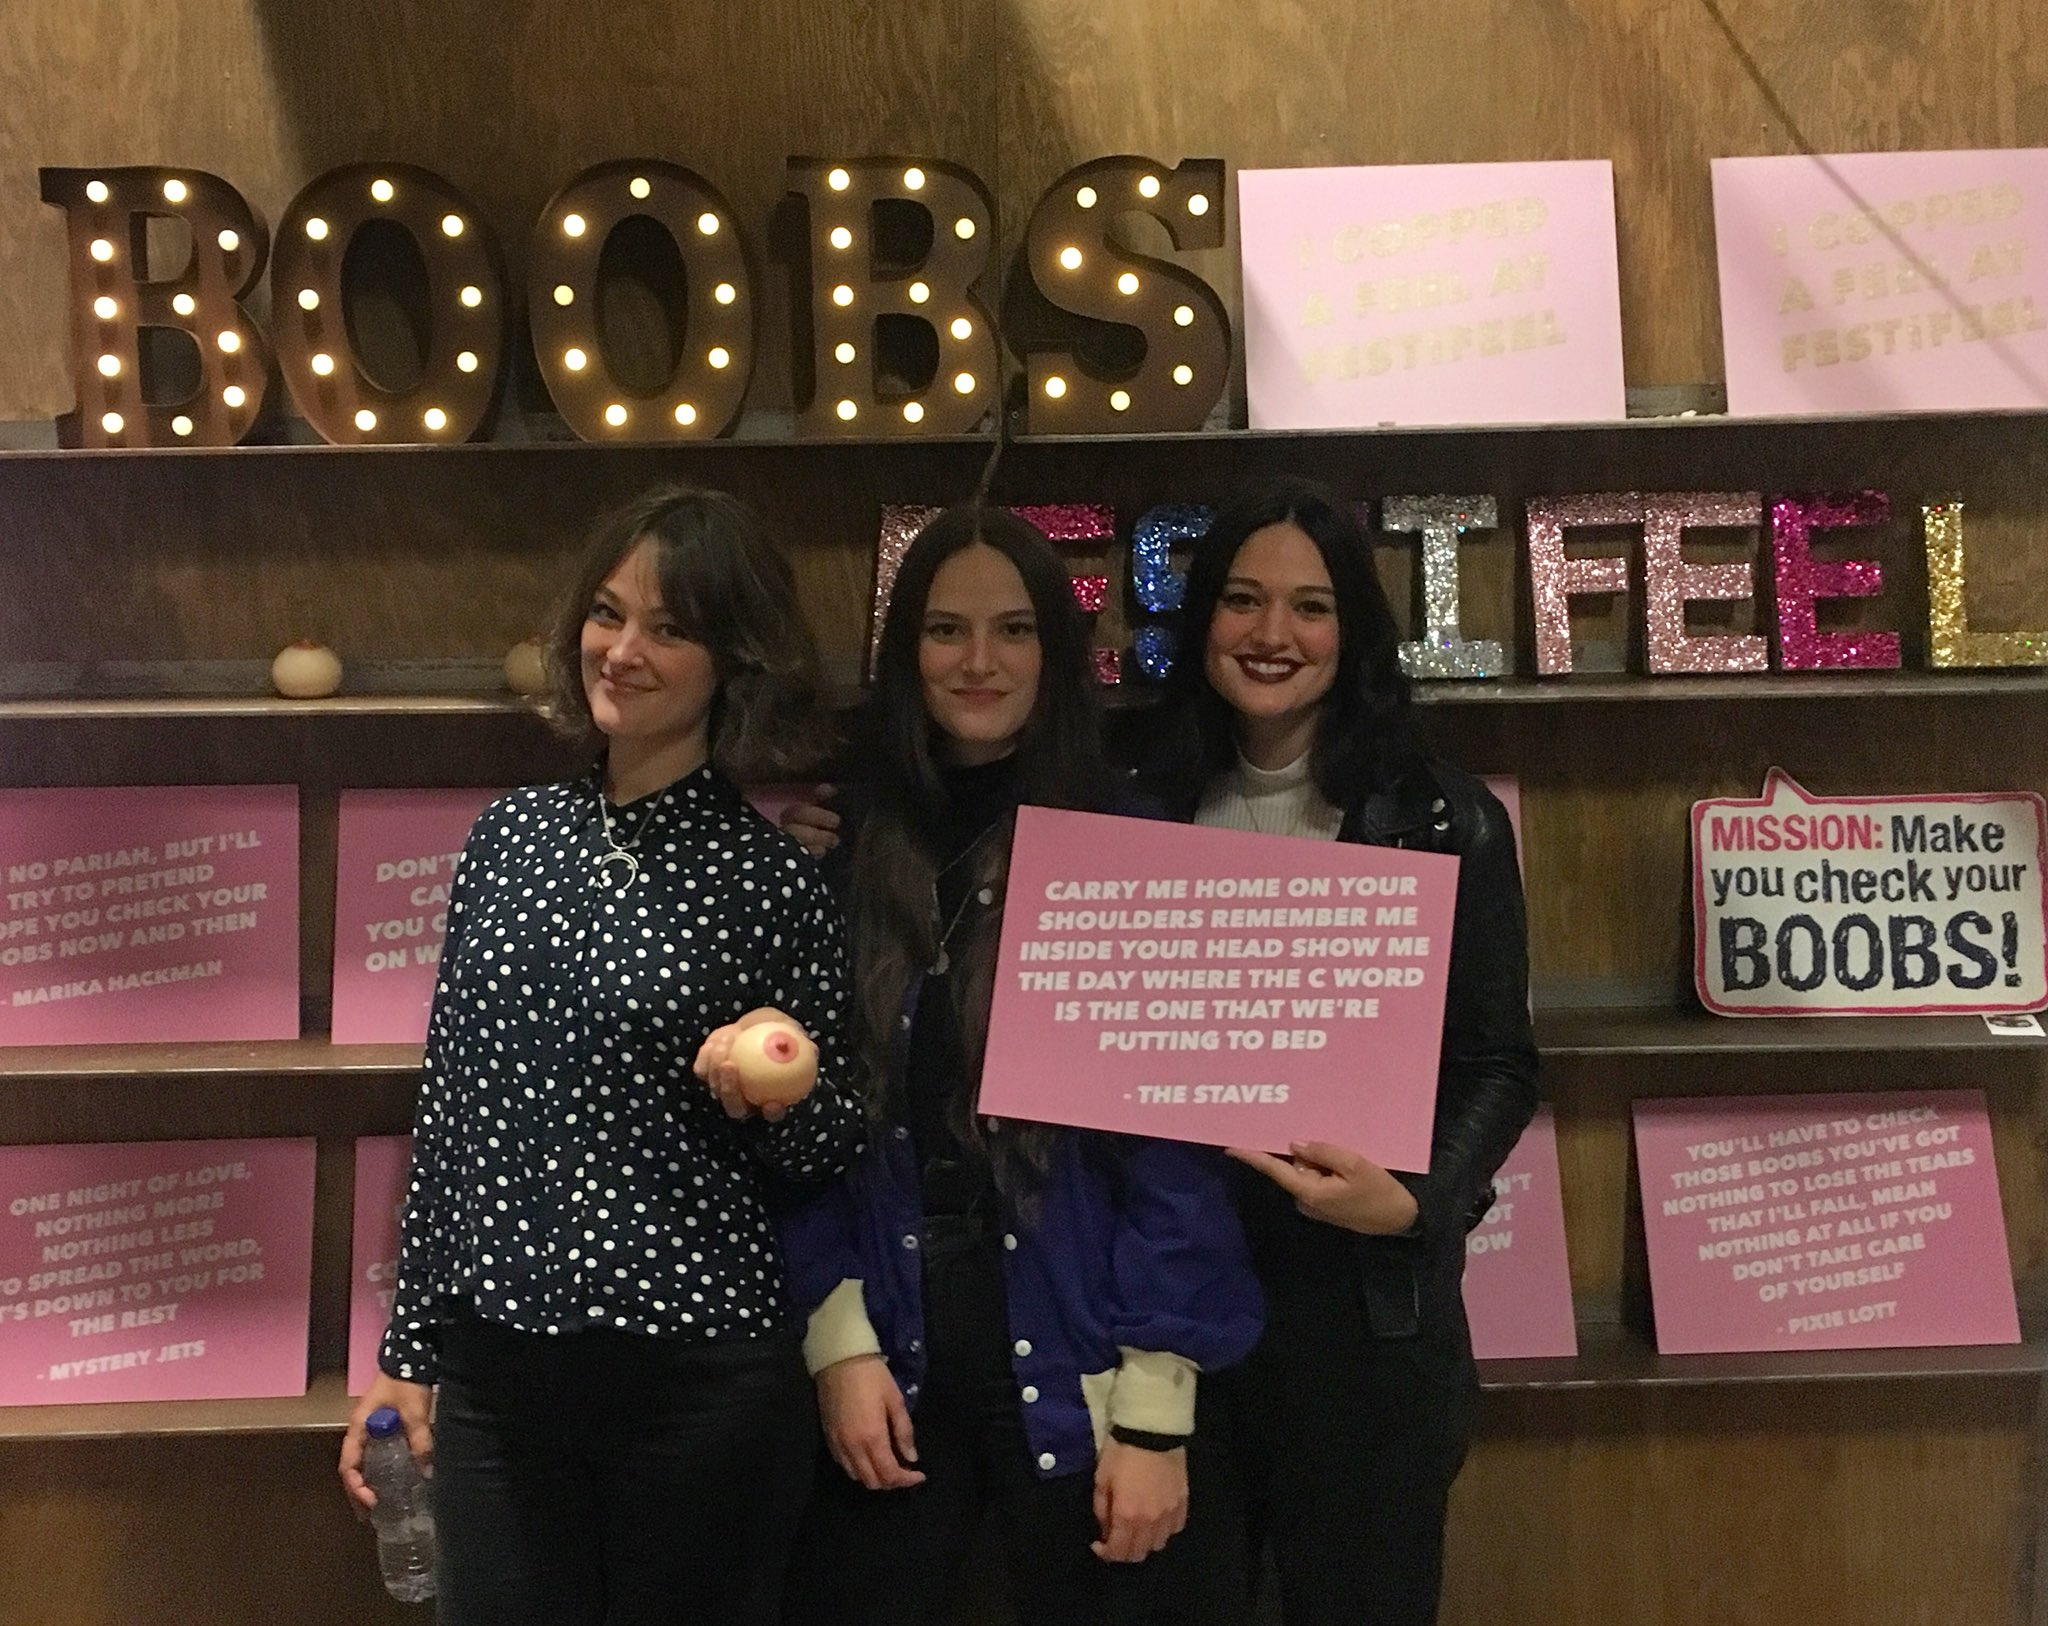 RT @thestaves: Excited to be at #FESTIFEEL with @CoppaFeelPeople 💓 https://t.co/FEaKrTkro5